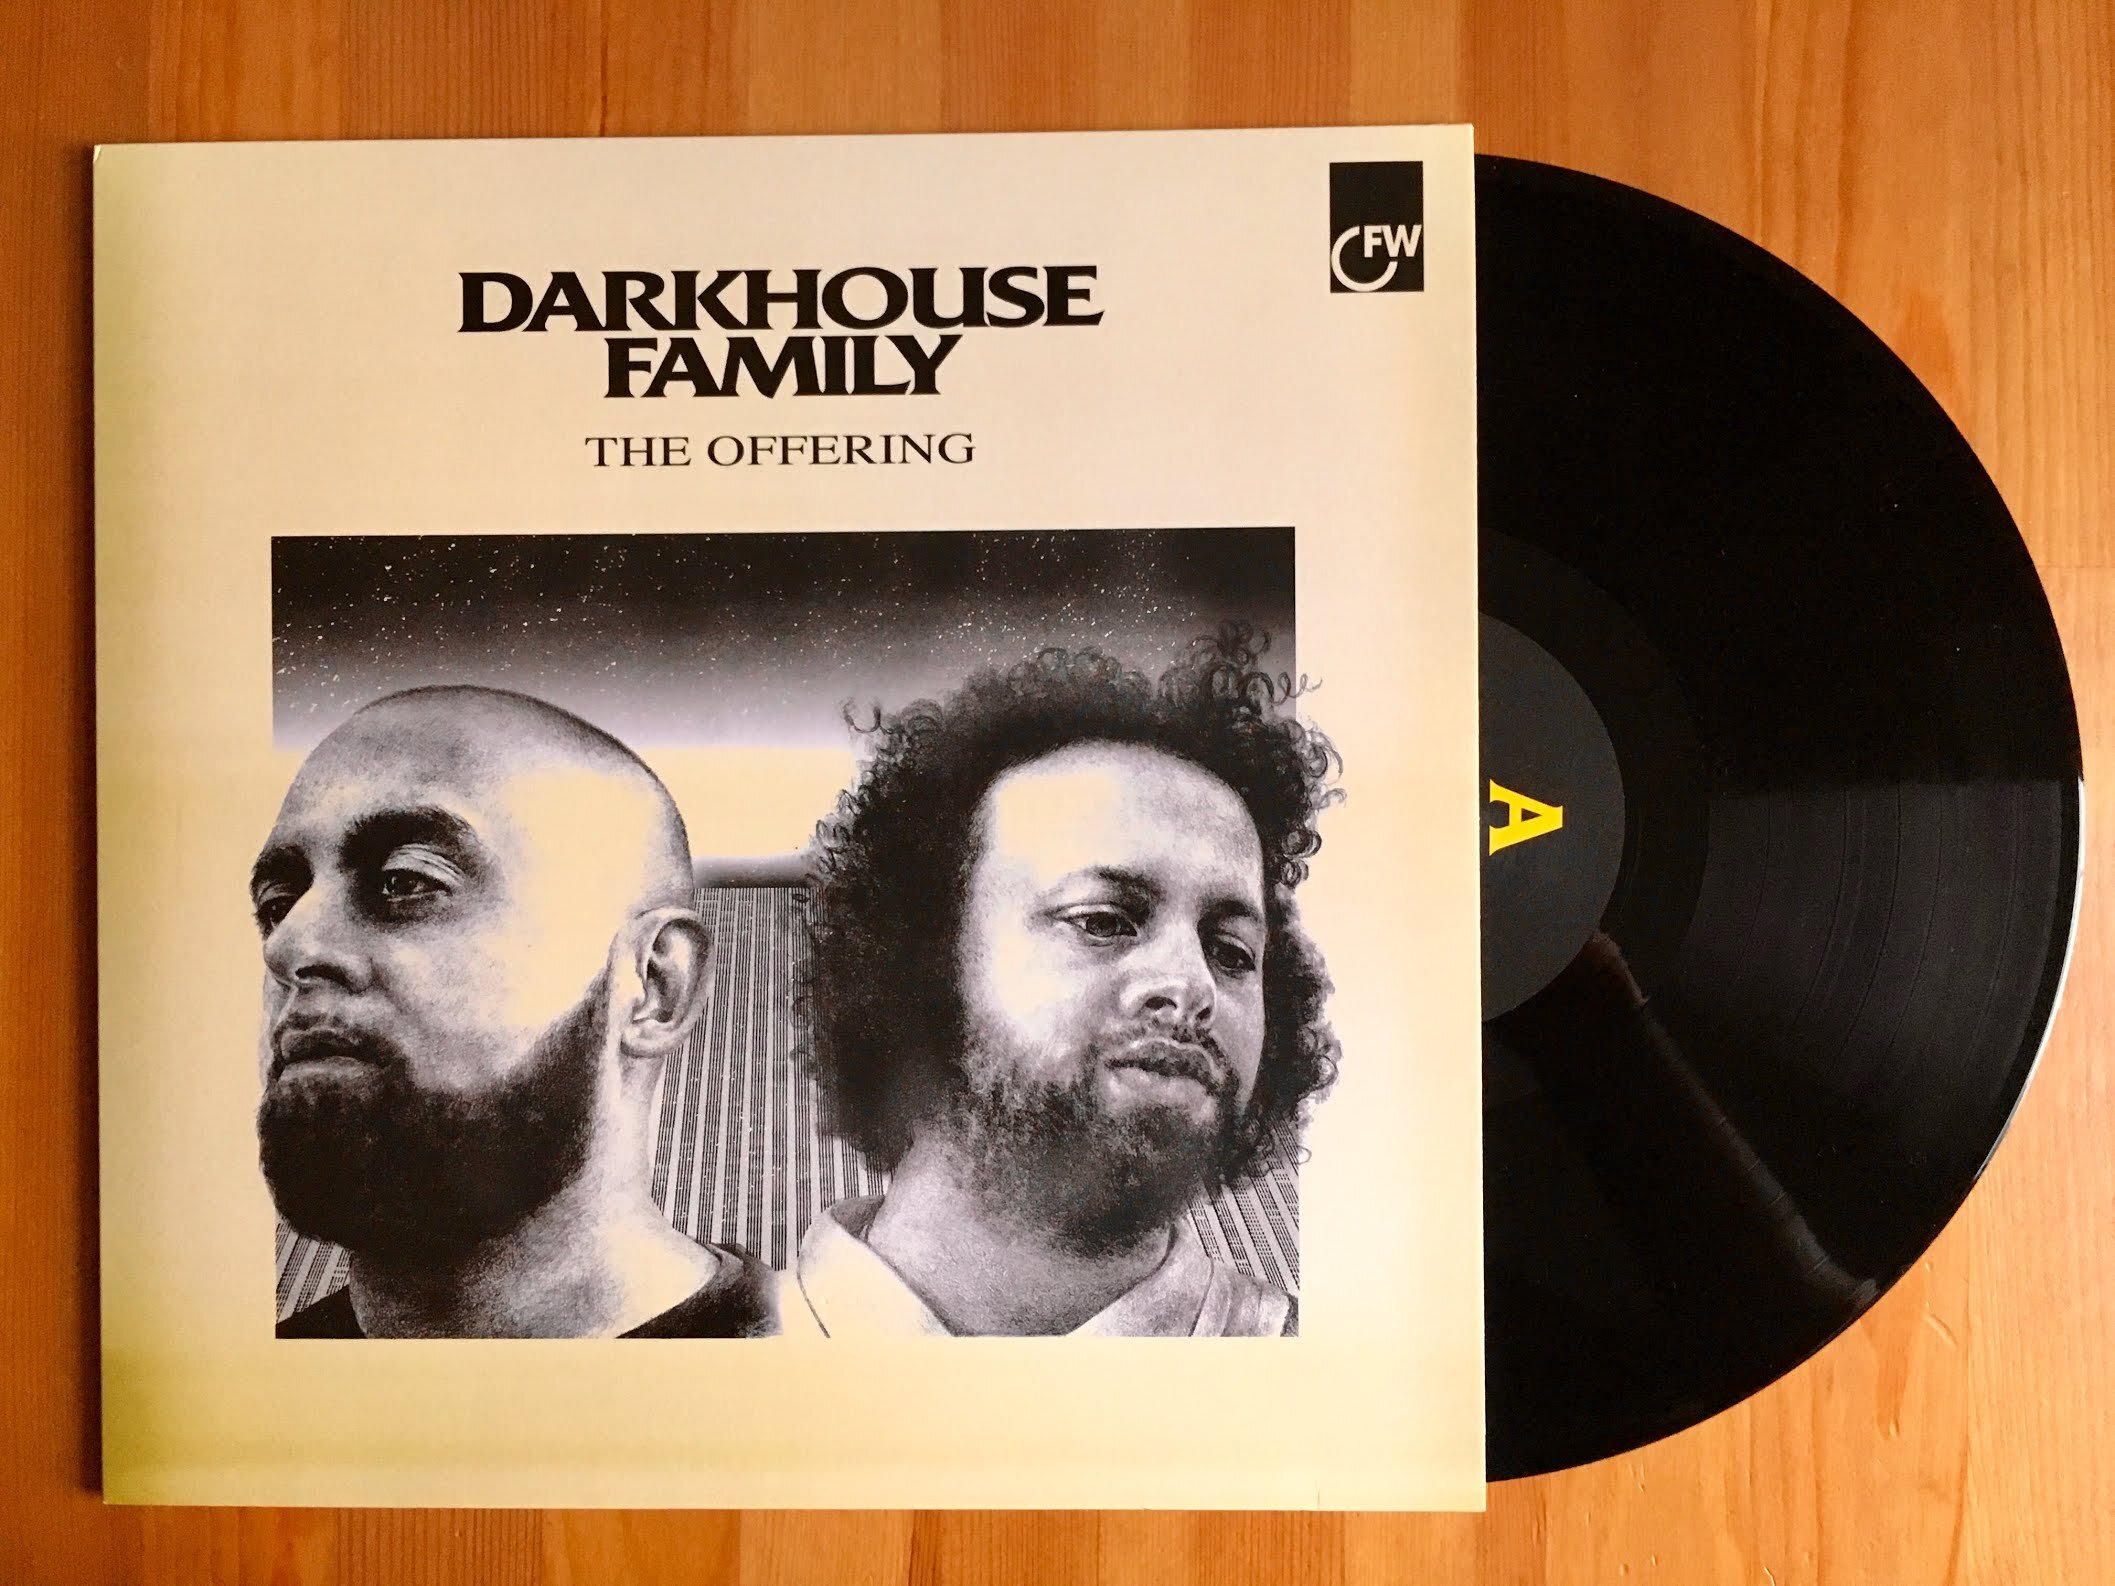 Darkhouse Family - The Offering - First Word Records